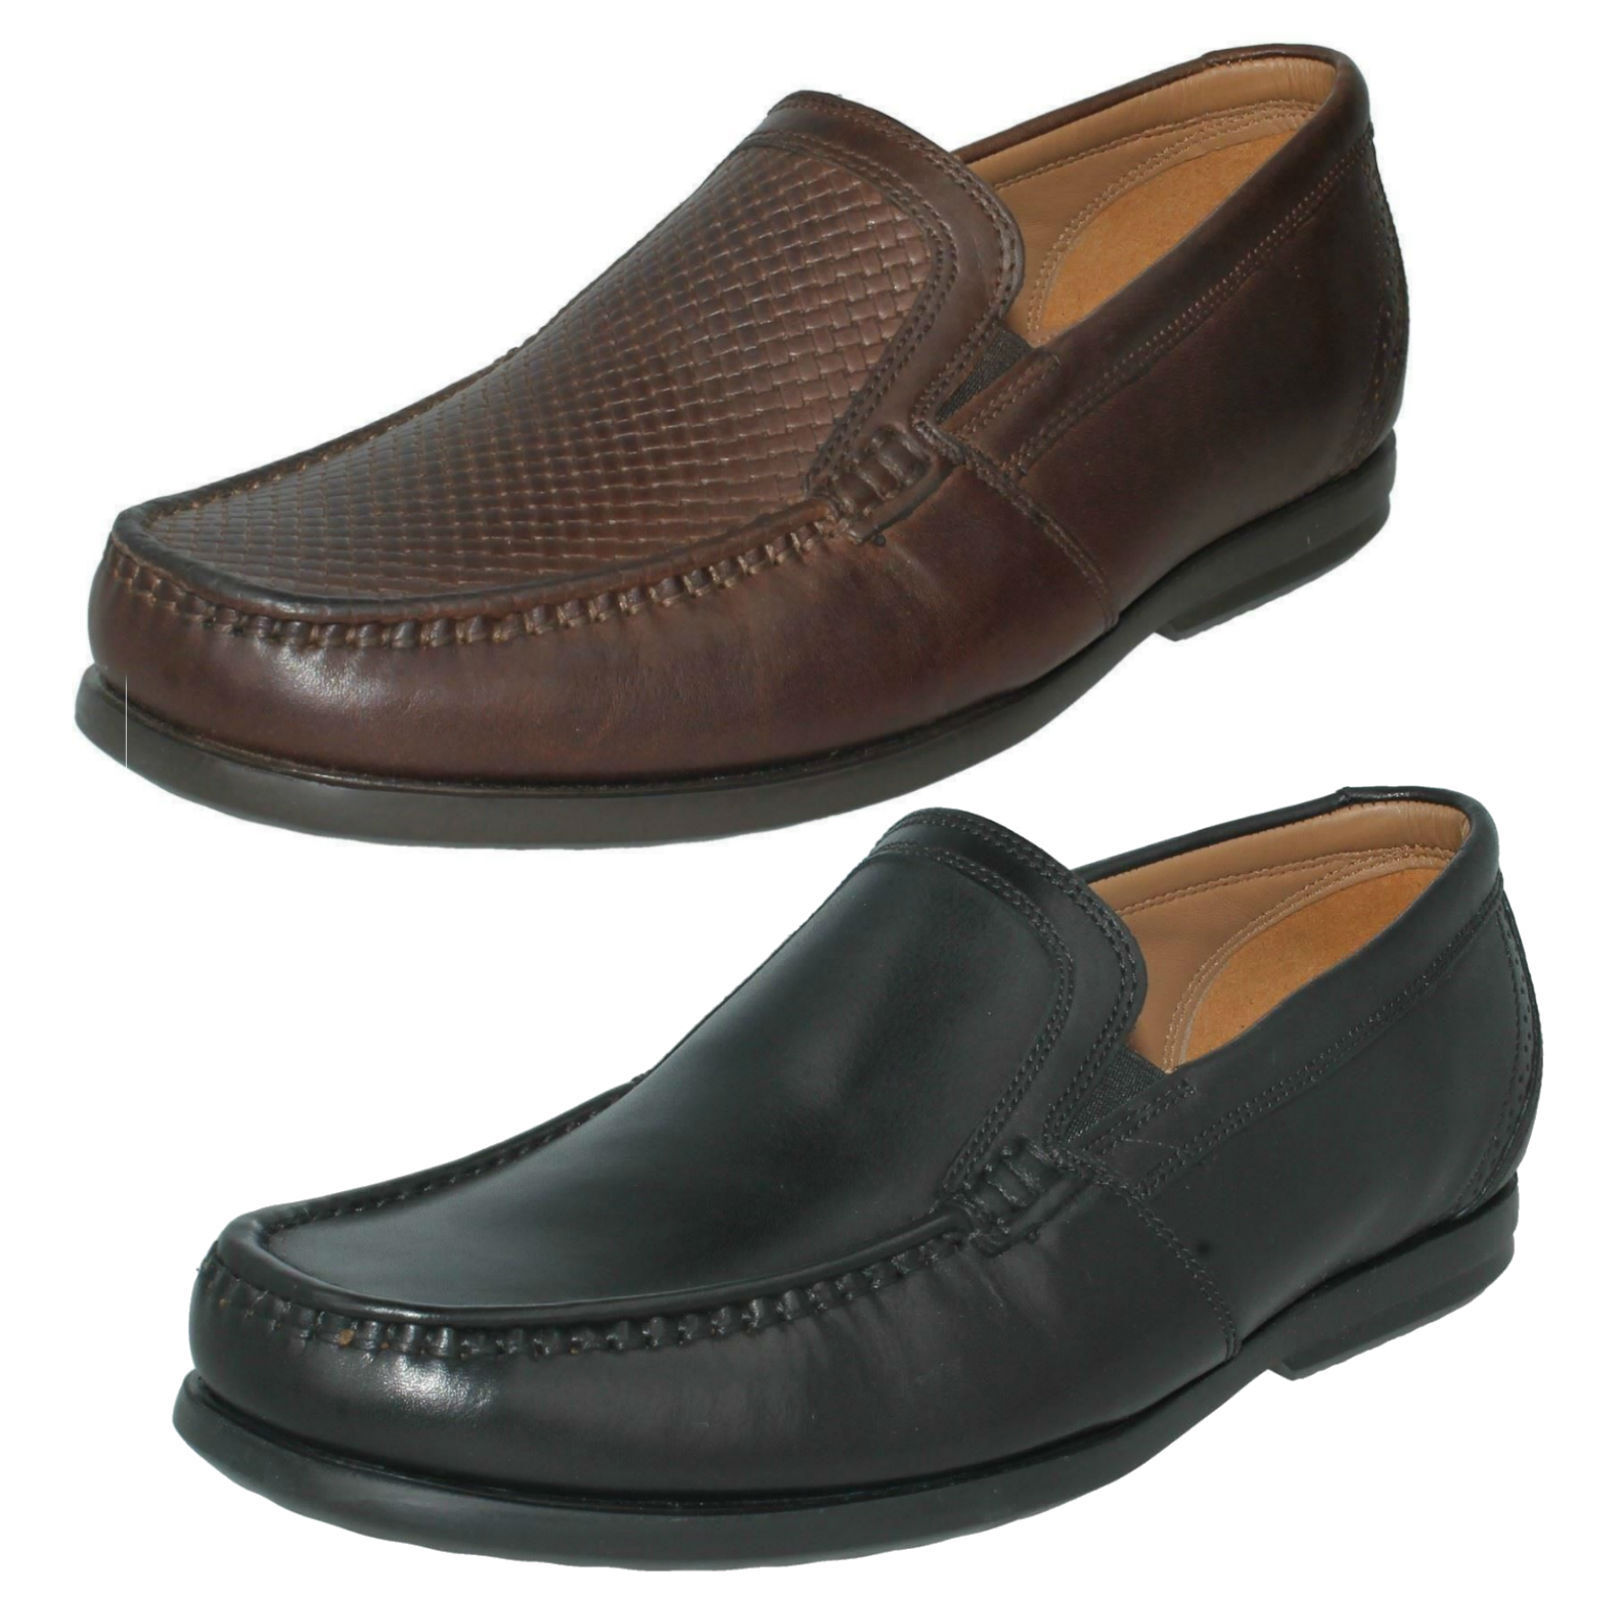 MENS CLARKS UNSTRUCTURED SLIP ON LEATHER SMART STYLISH SHOES SIZE UN GALA FREE